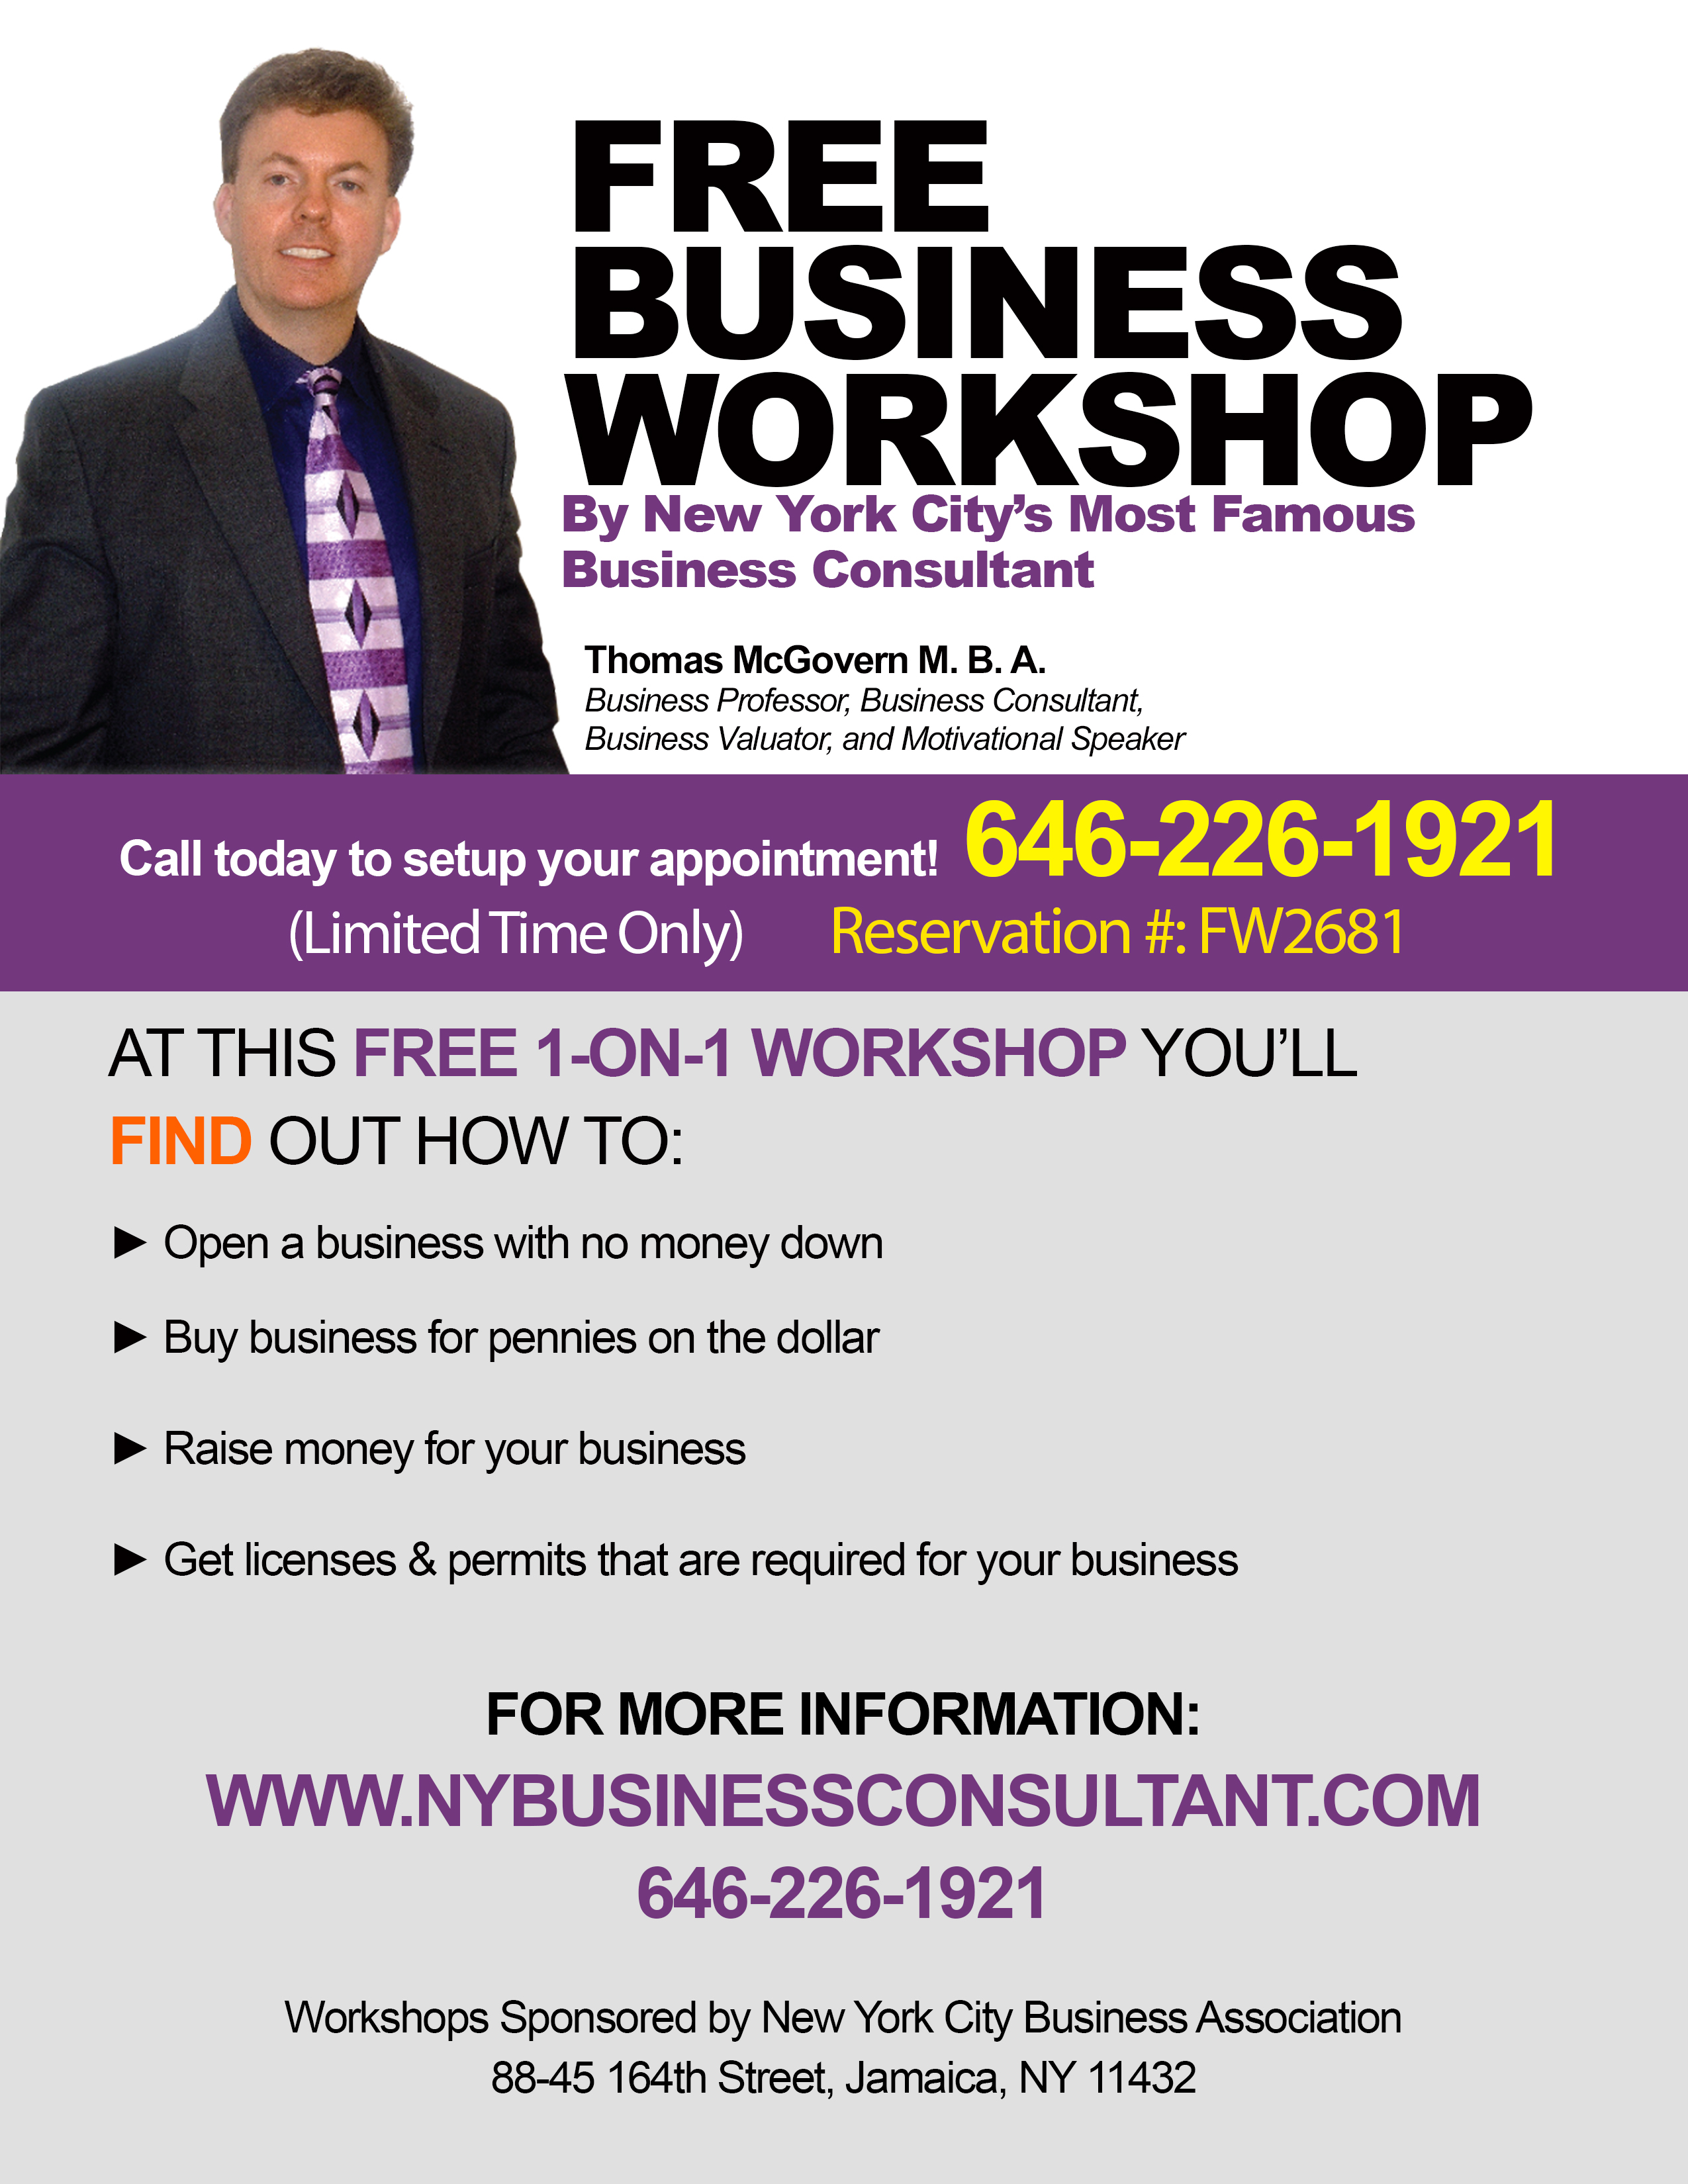 FREE 1-ON-1 BUSINESS WORKSHOP